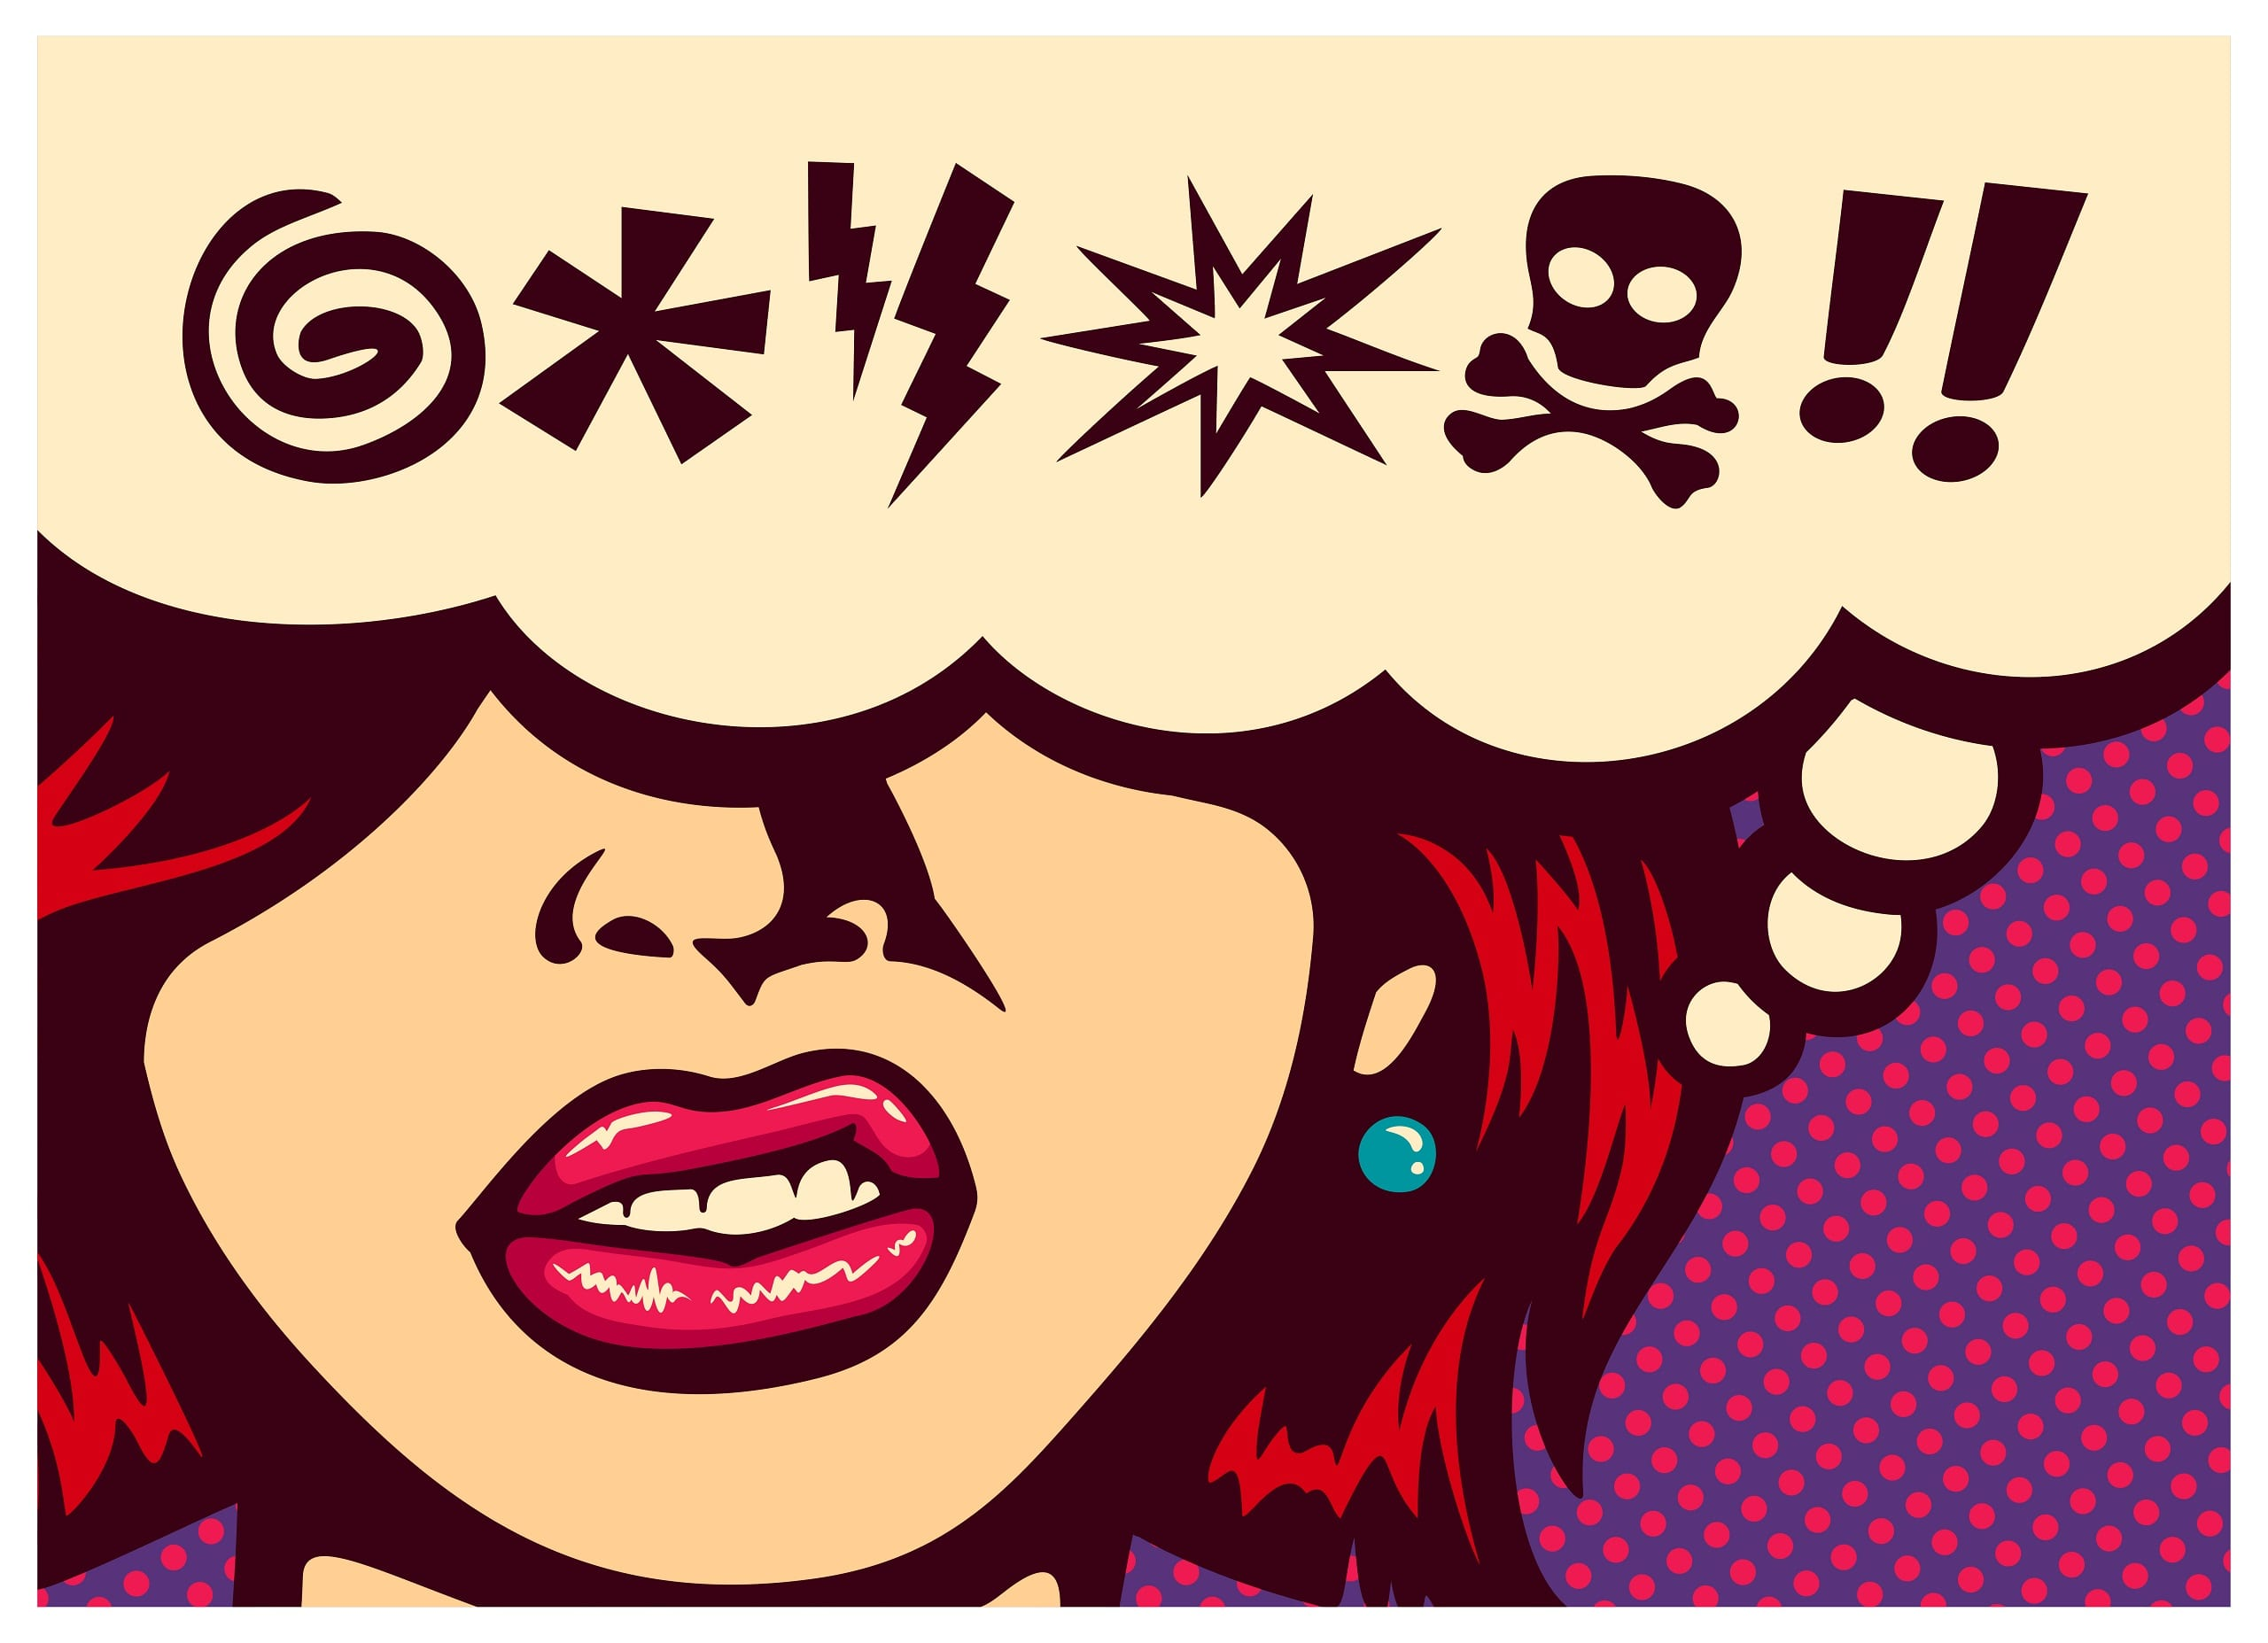 Pop art style comics panel angry woman grinding teeth with speech bubble and swear words symbols.